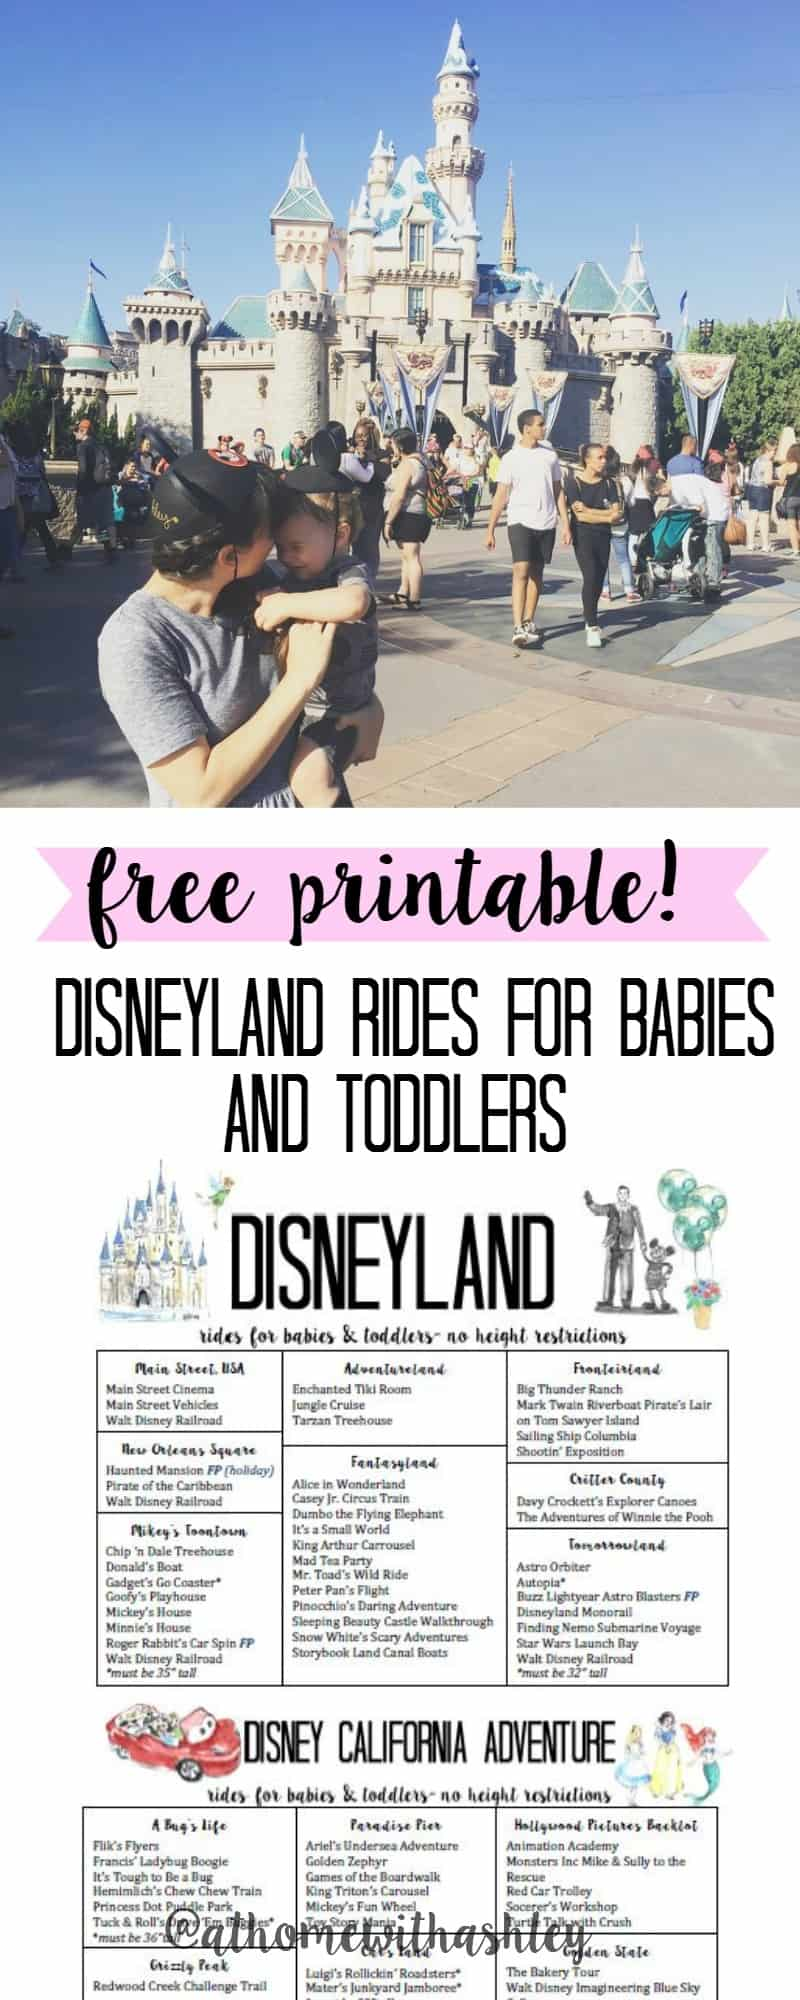 disneyland-rides-for-babies-and-toddlers-with-no-height-restriction-free-printable